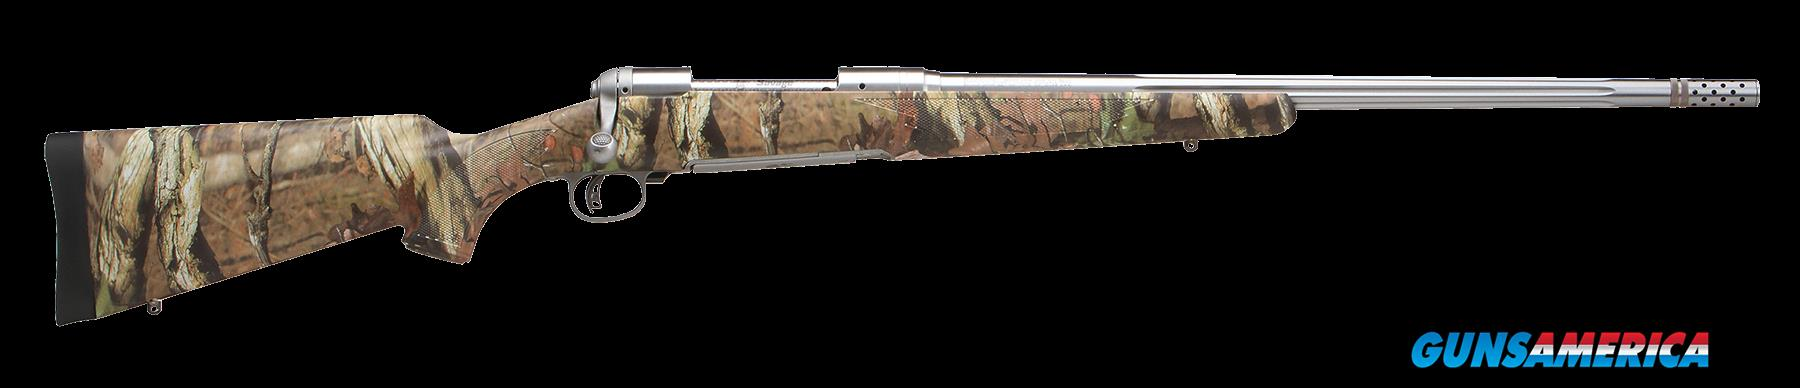 "Savage 22454 16/116 Bear Hunter Bolt 338 Federal 23"" 4+1 Synthetic Camo Stk Stainless  Guns > Rifles > S Misc Rifles"